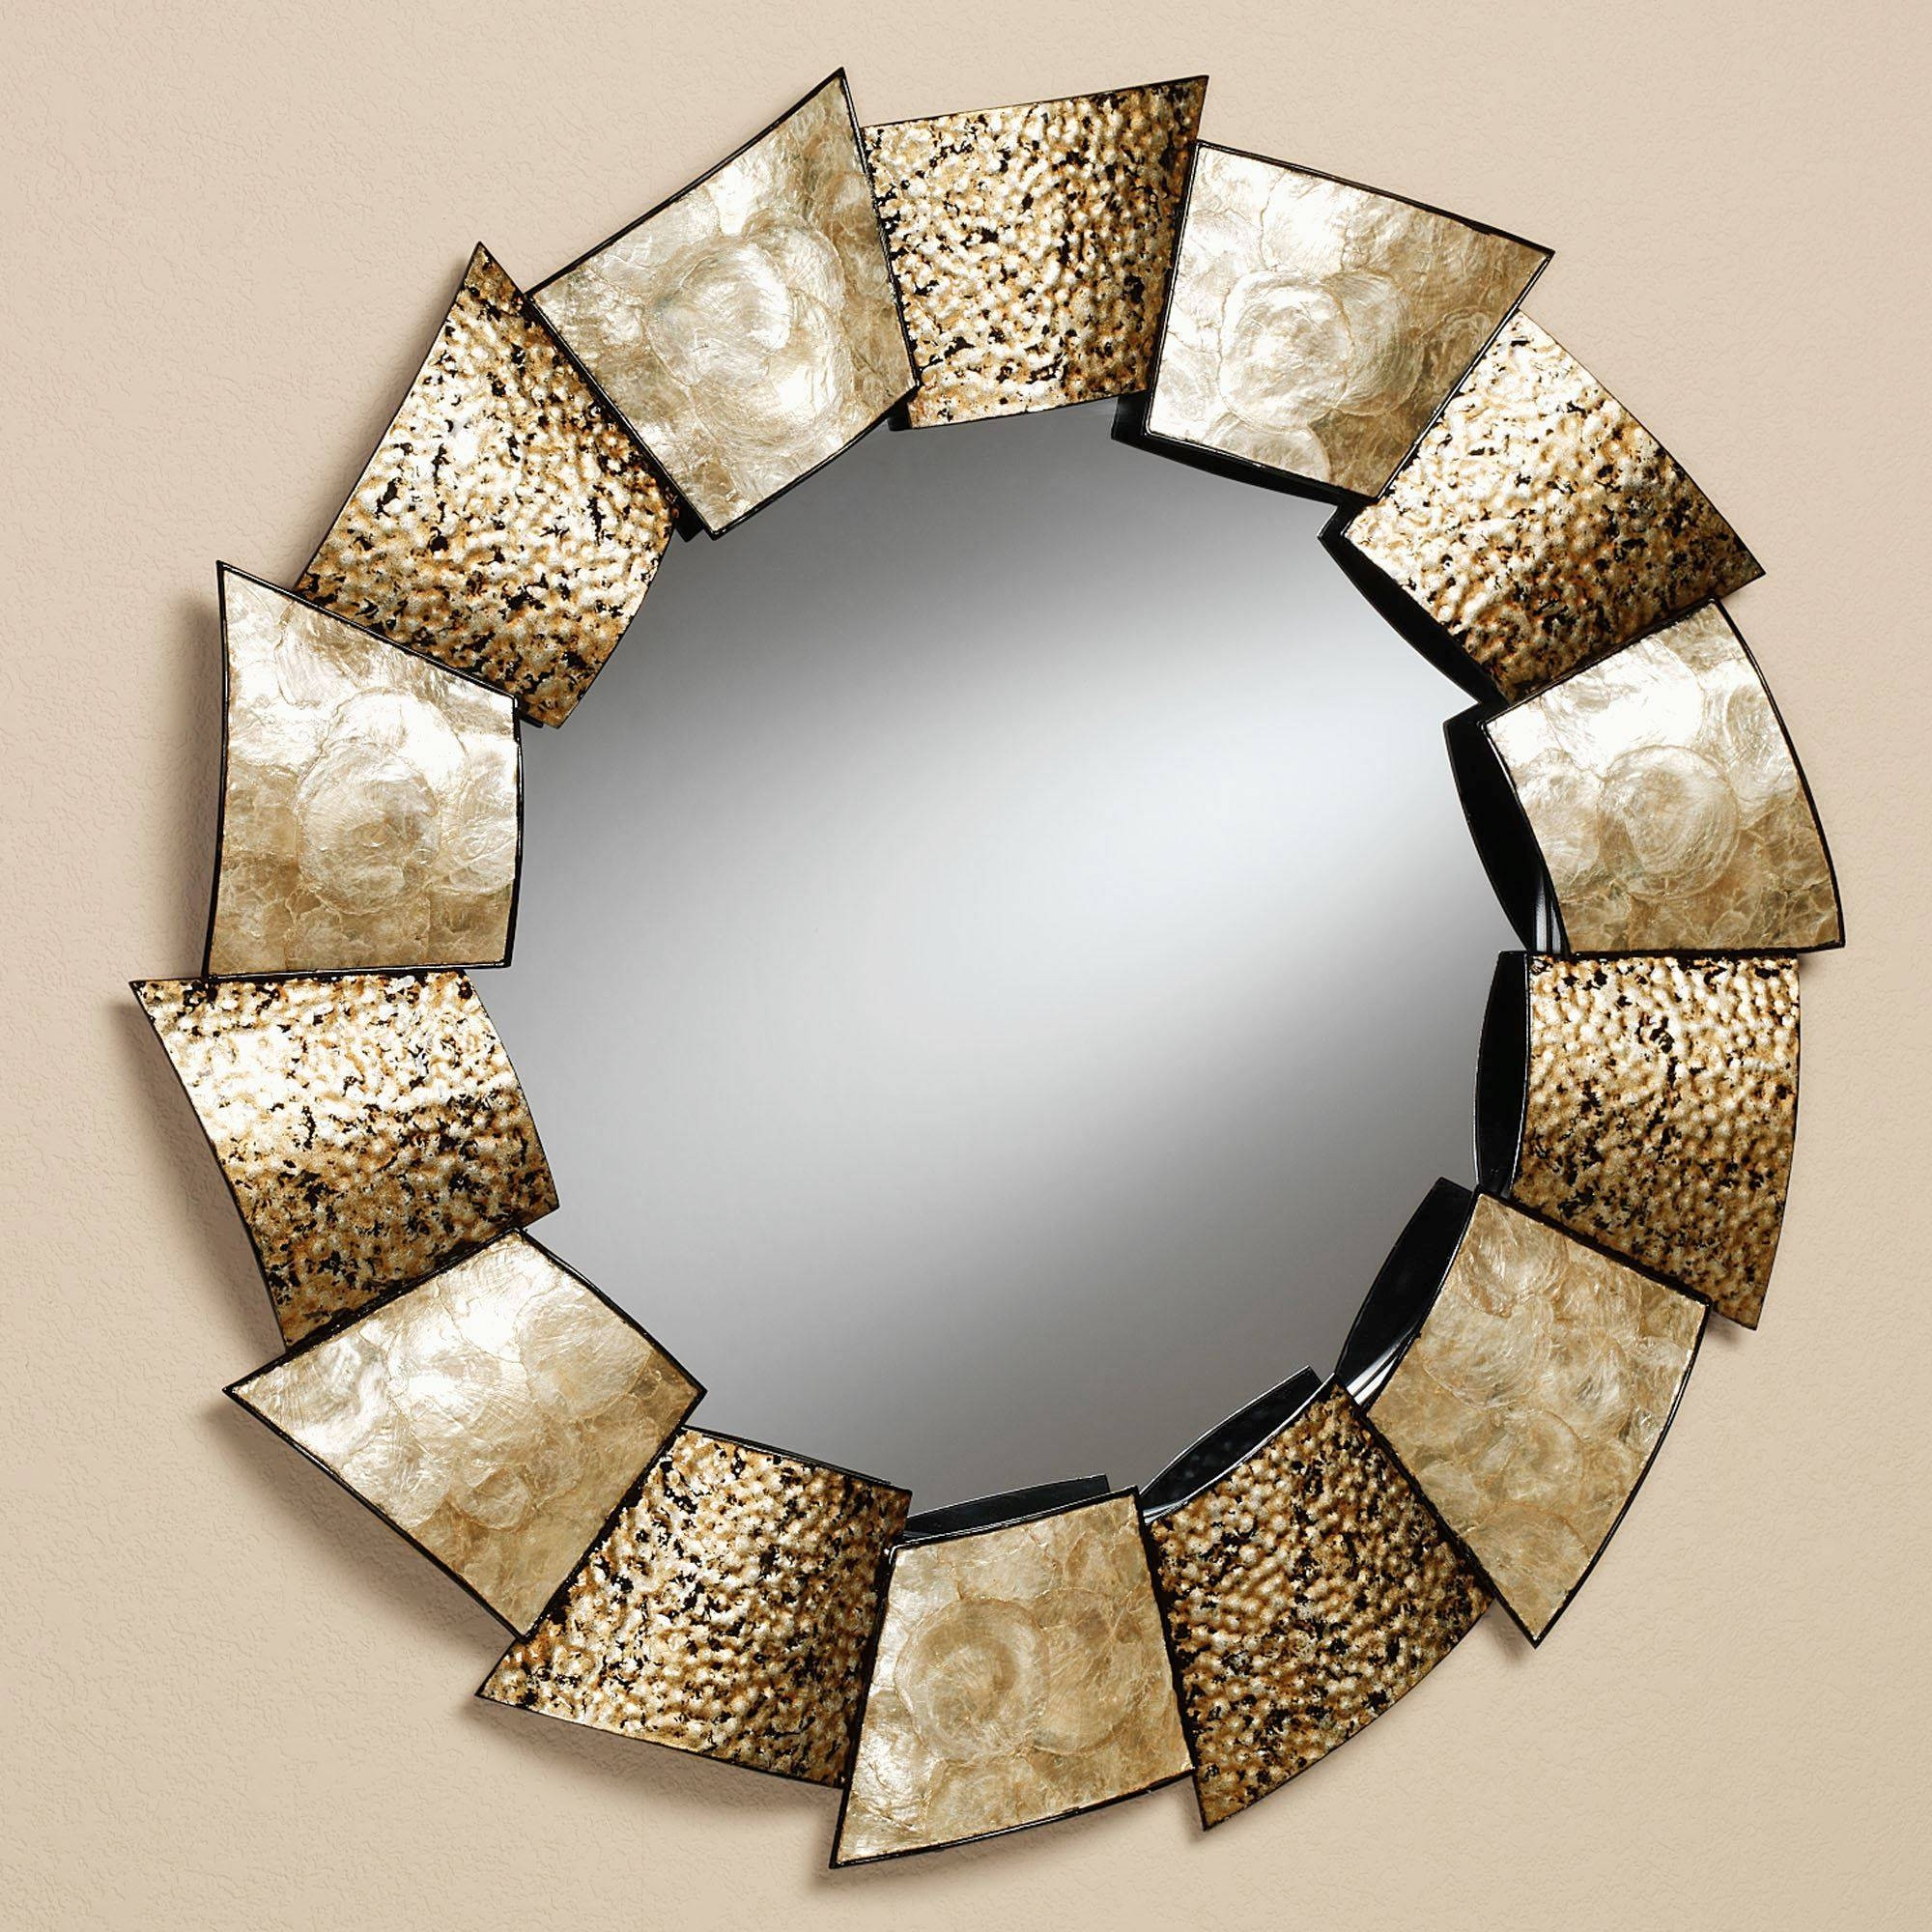 Large Metal Framed Mirrors, Unique Decorative Wall Mirrors intended for Large Round Metal Mirrors (Image 7 of 15)